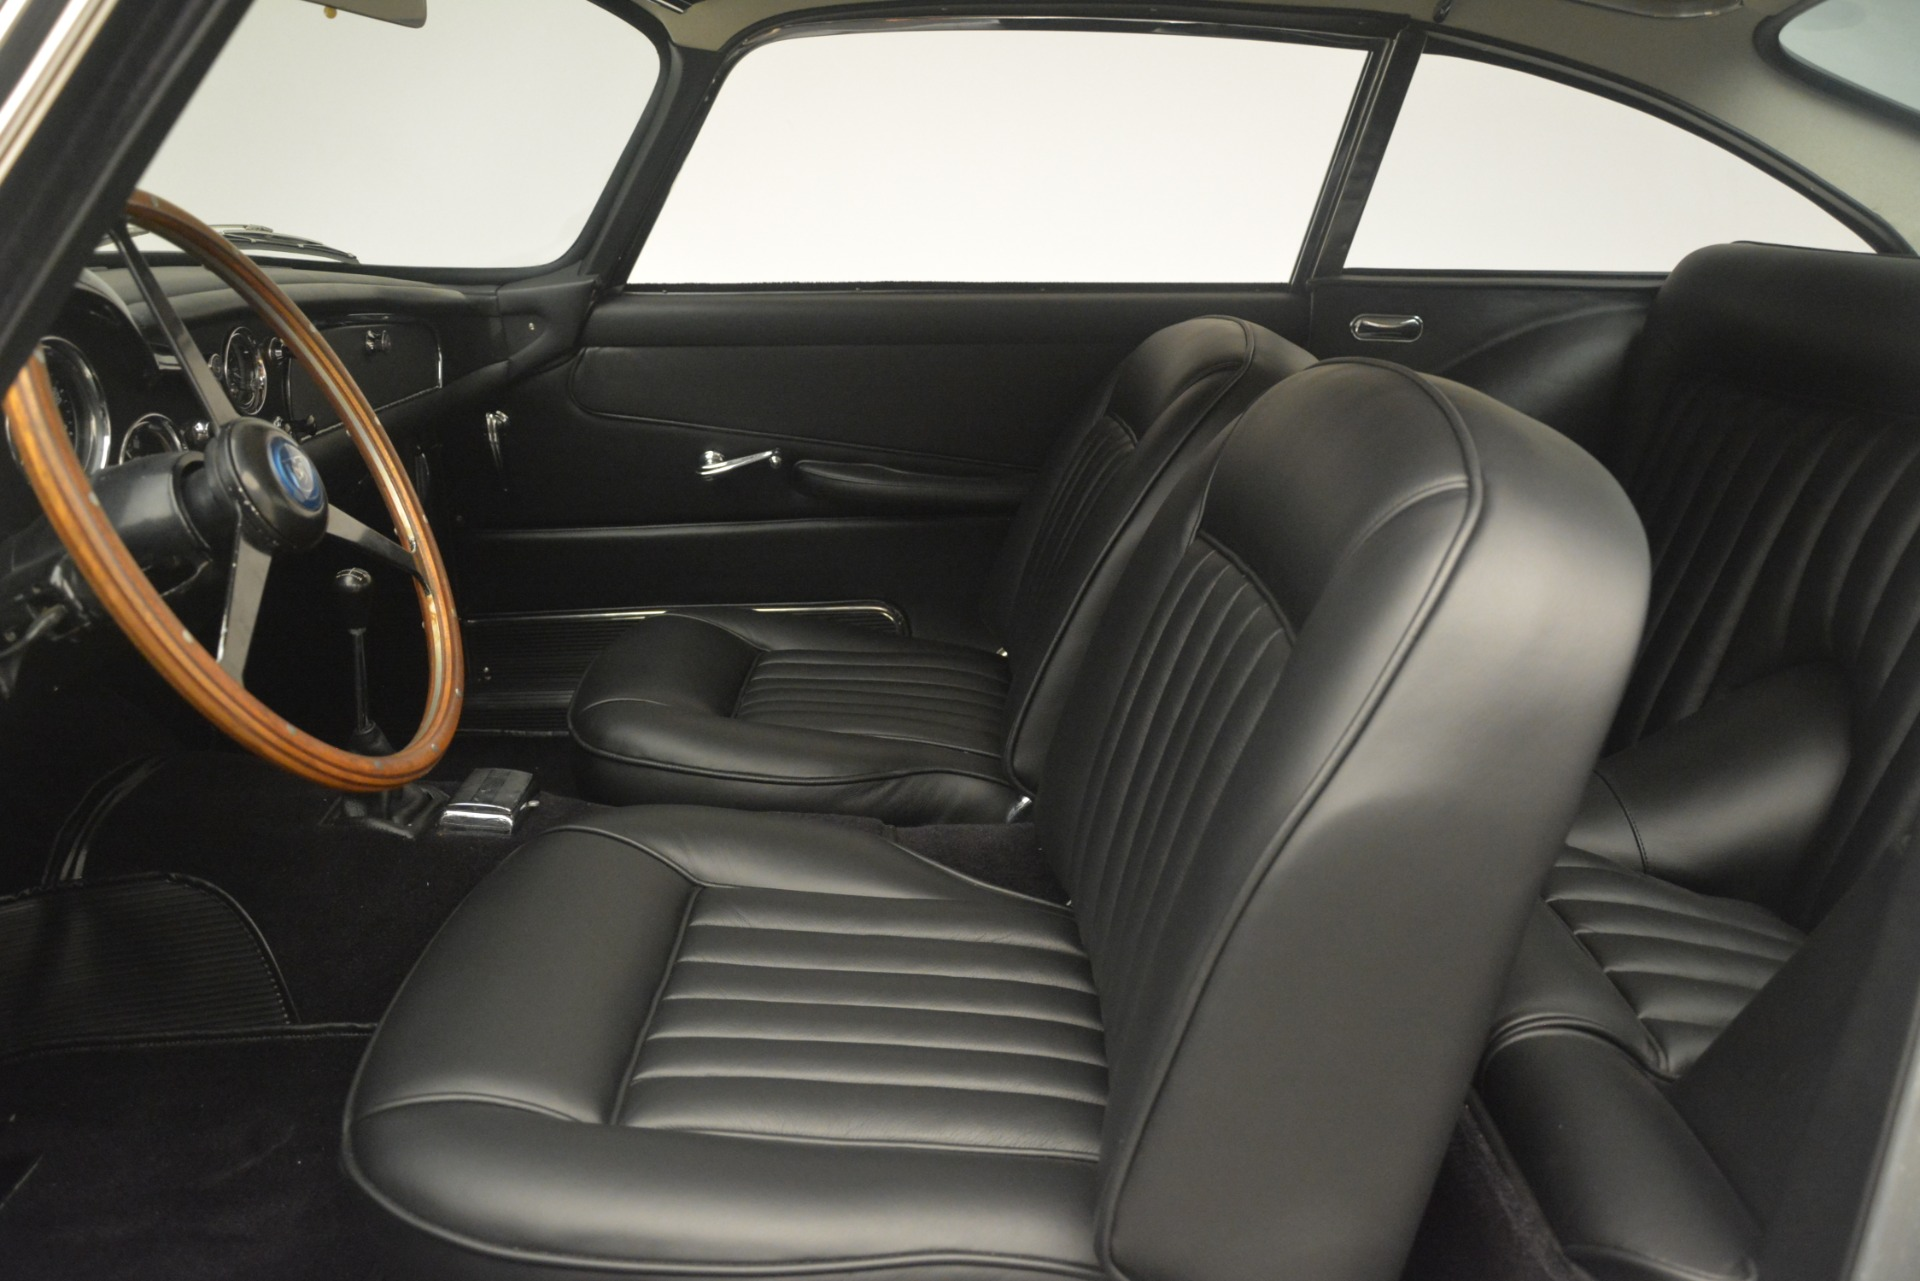 Used 1961 Aston Martin DB4 Series IV Coupe For Sale In Greenwich, CT 3186_p20